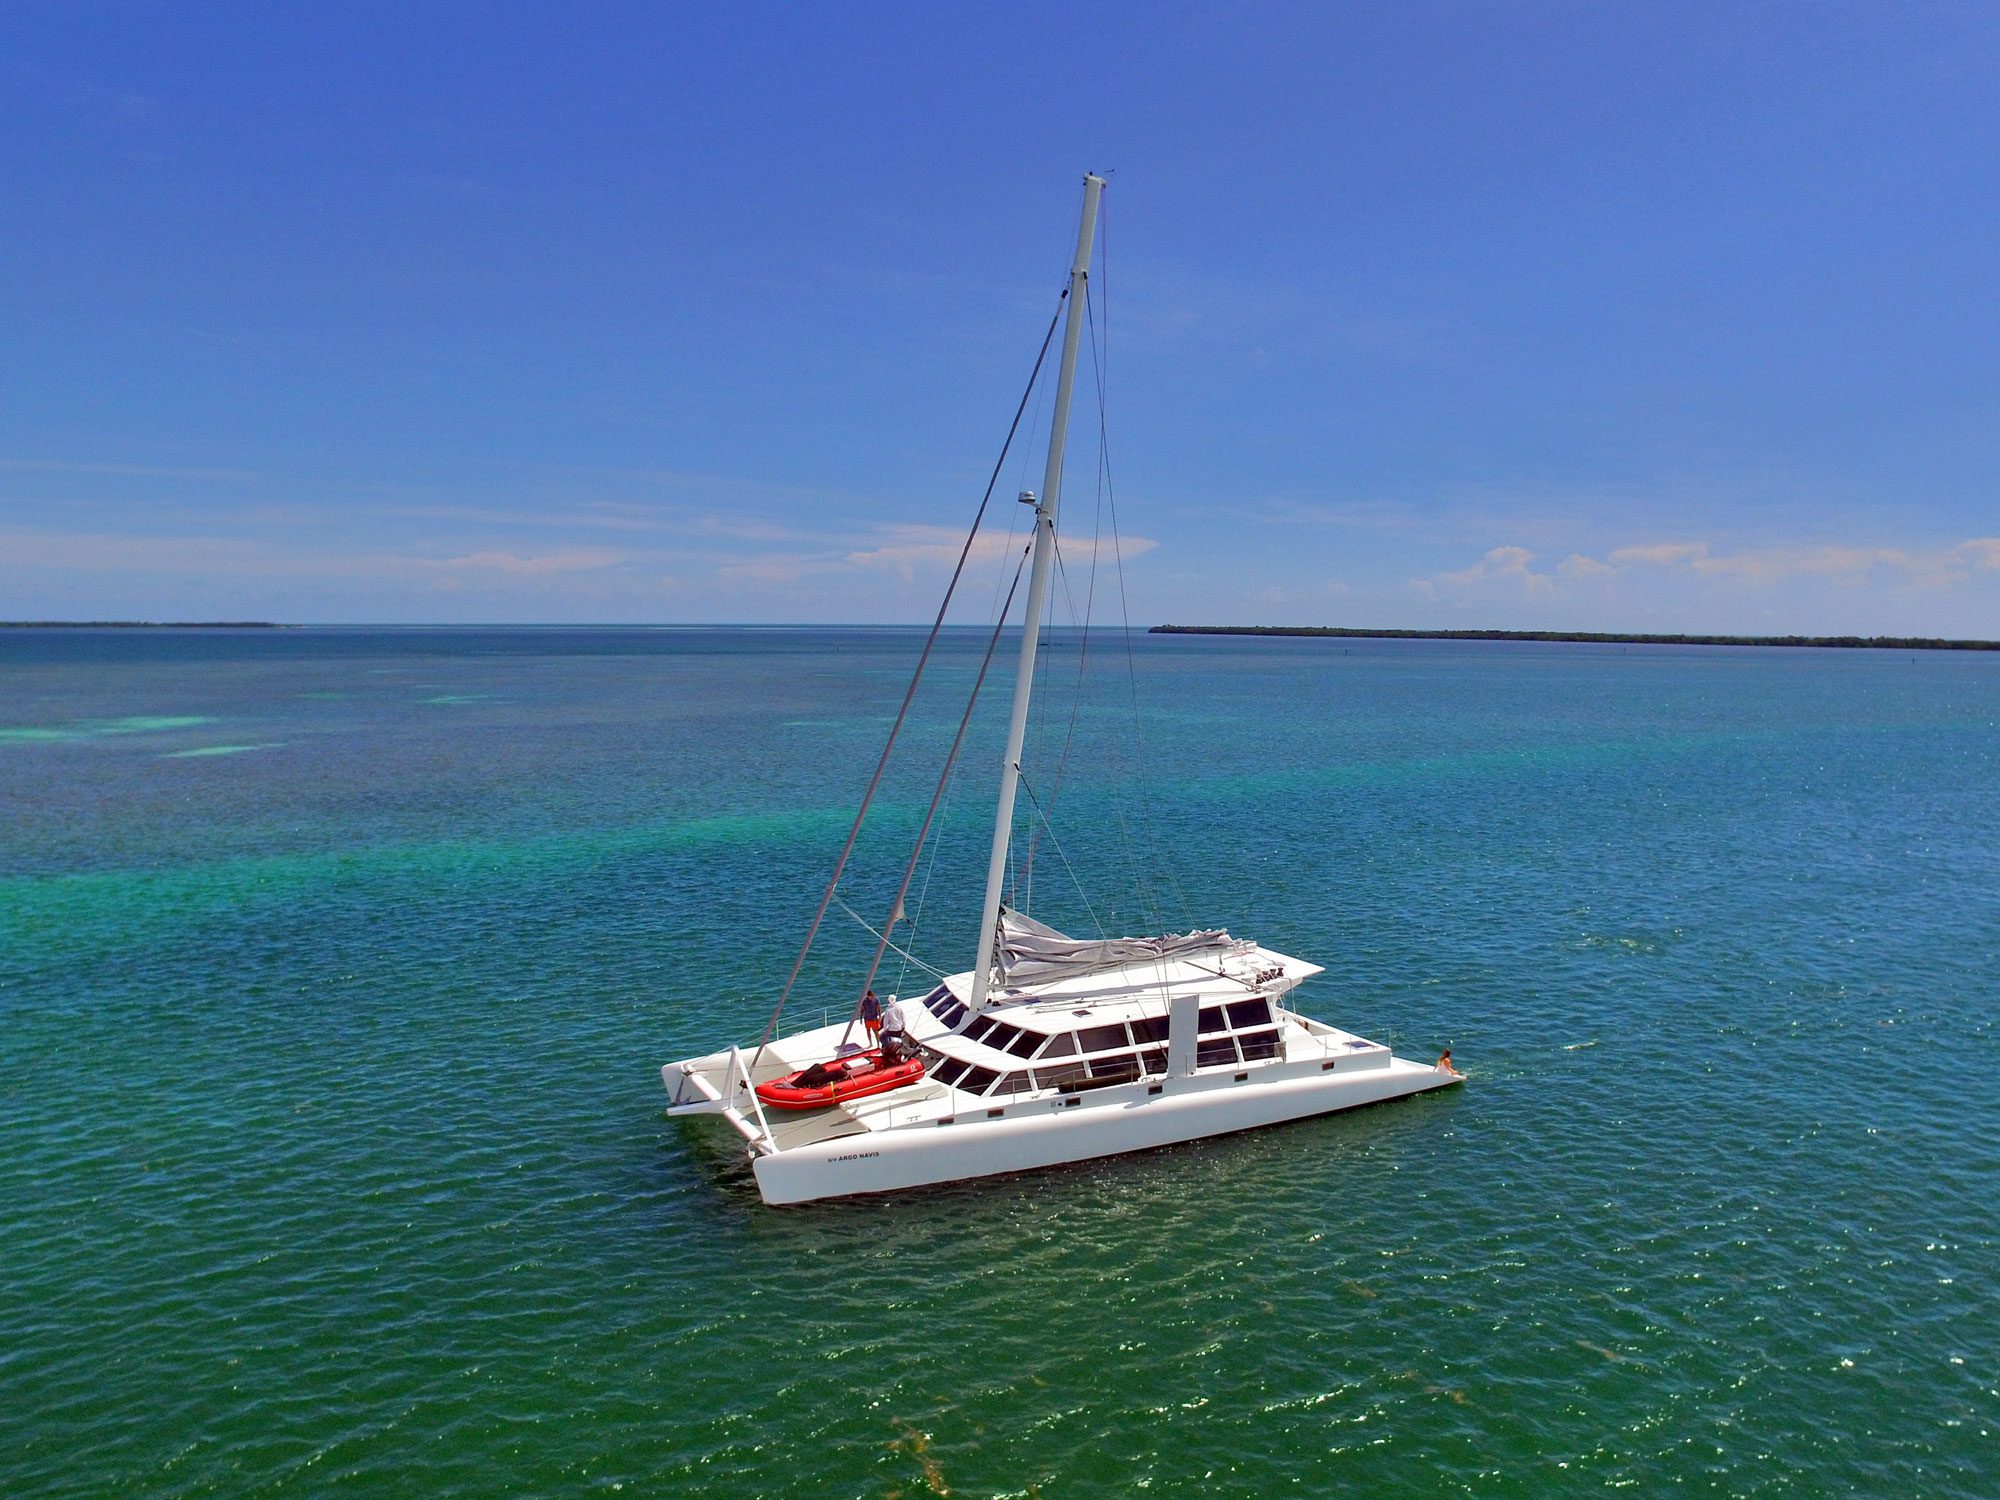 Argo Navis Key West Sailing Charter